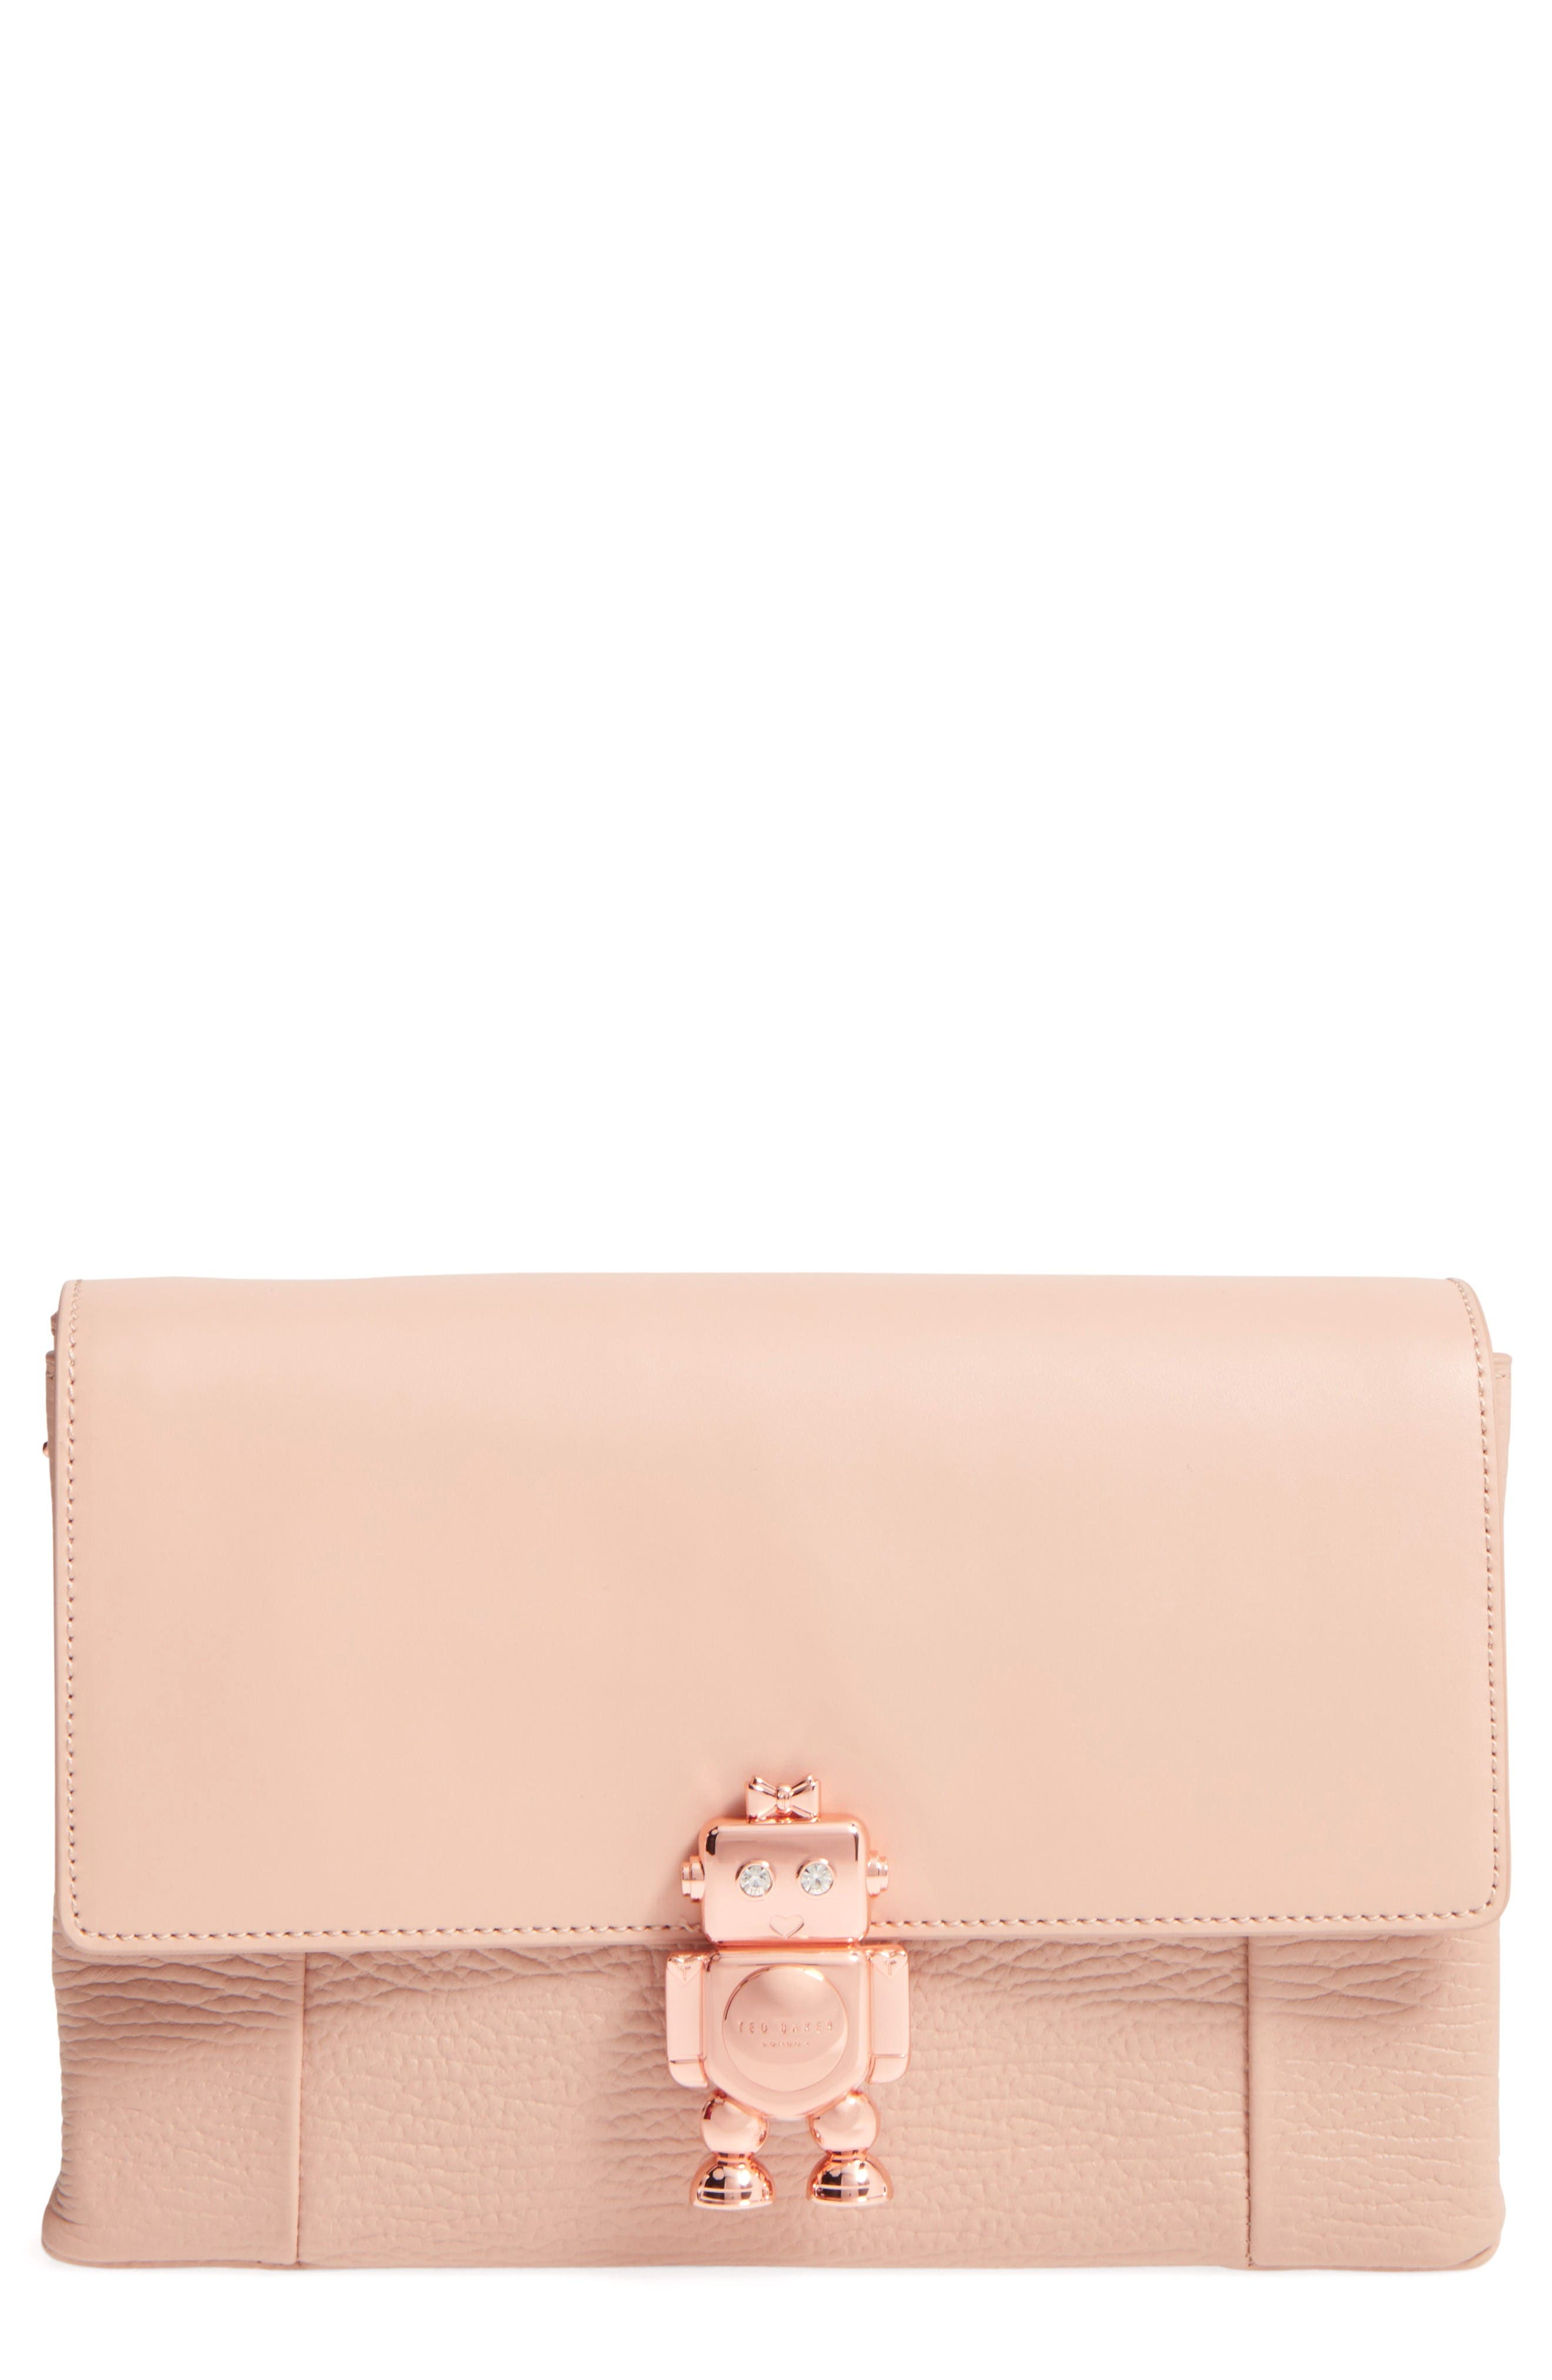 Ted Baker London Jemms Leather Crossbody Bag